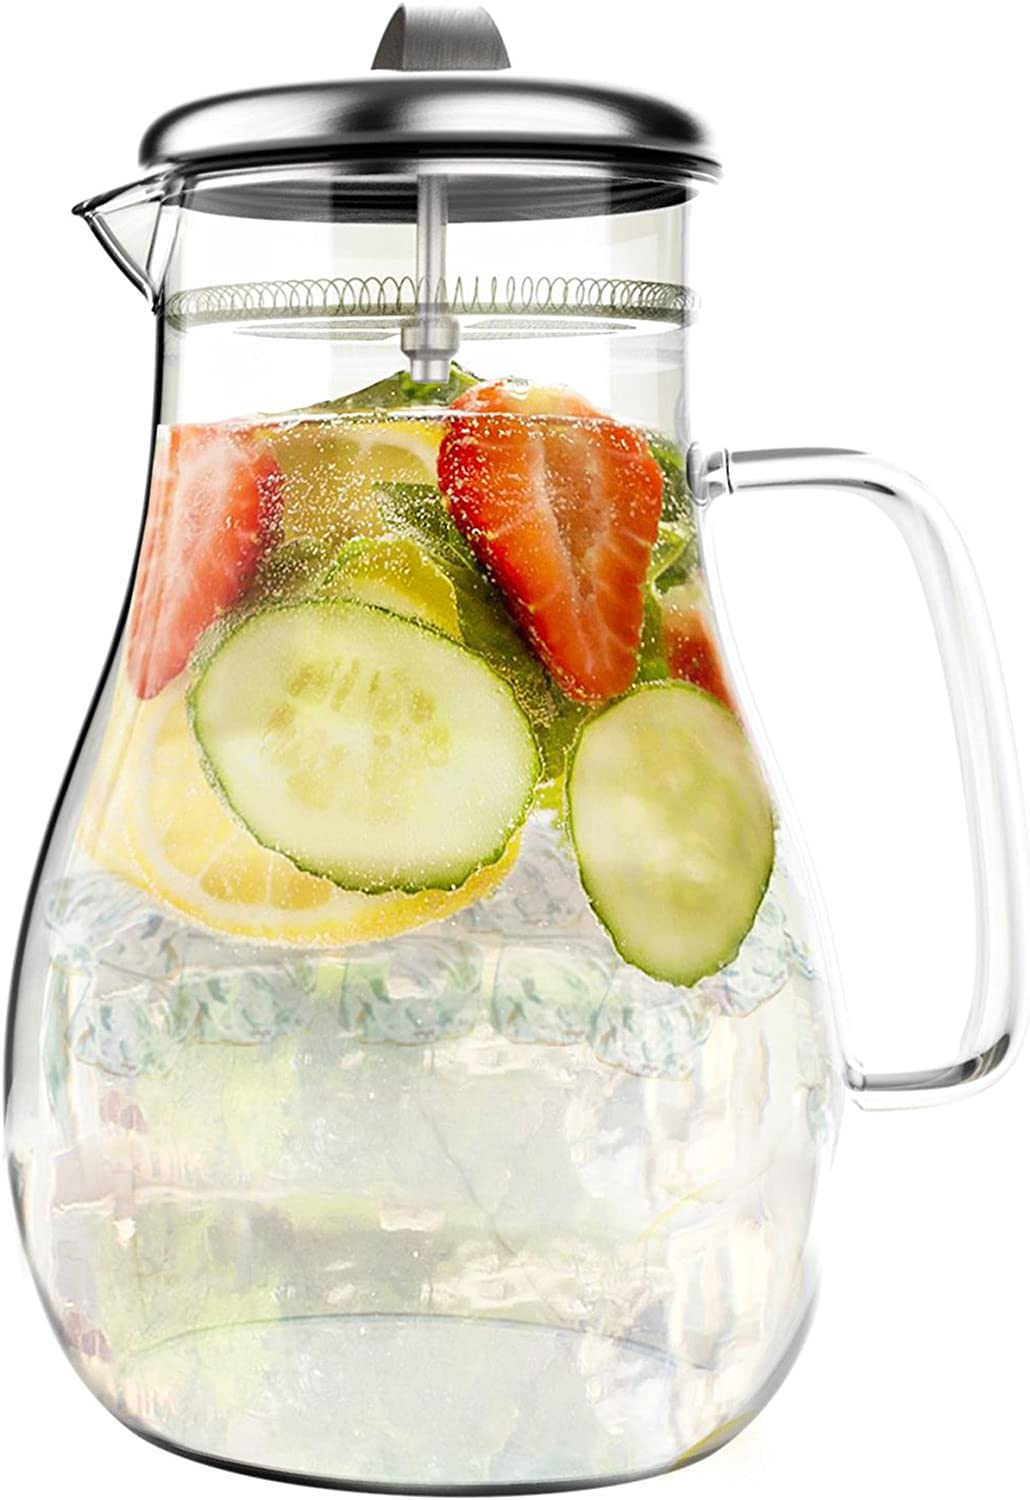 Classic Cuisine Glass Pitcher-64oz. Carafe with Stainless Steel Filter Lid-Heat Resistant to 300F-For Water, Coffee, Tea, Punch, Lemonade and More, 64 oz, Clear